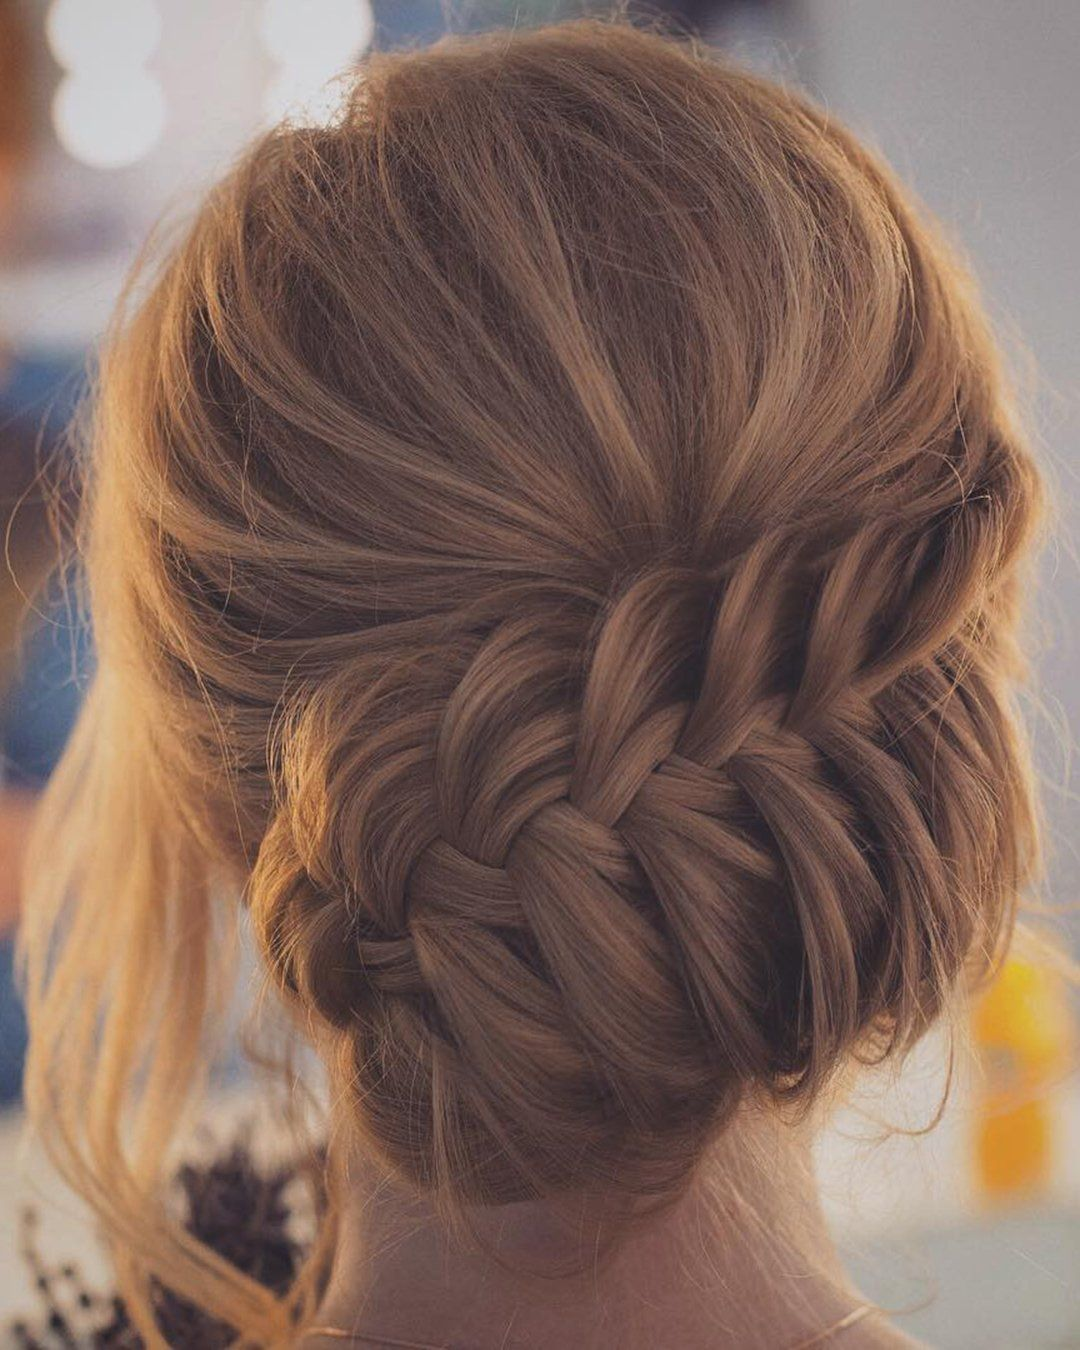 Mother Of The Bride Hairstyles 63 Elegant Ideas 2020 21 Guide In 2020 Hair Styles Mother Of The Bride Hair Bride Hairstyles